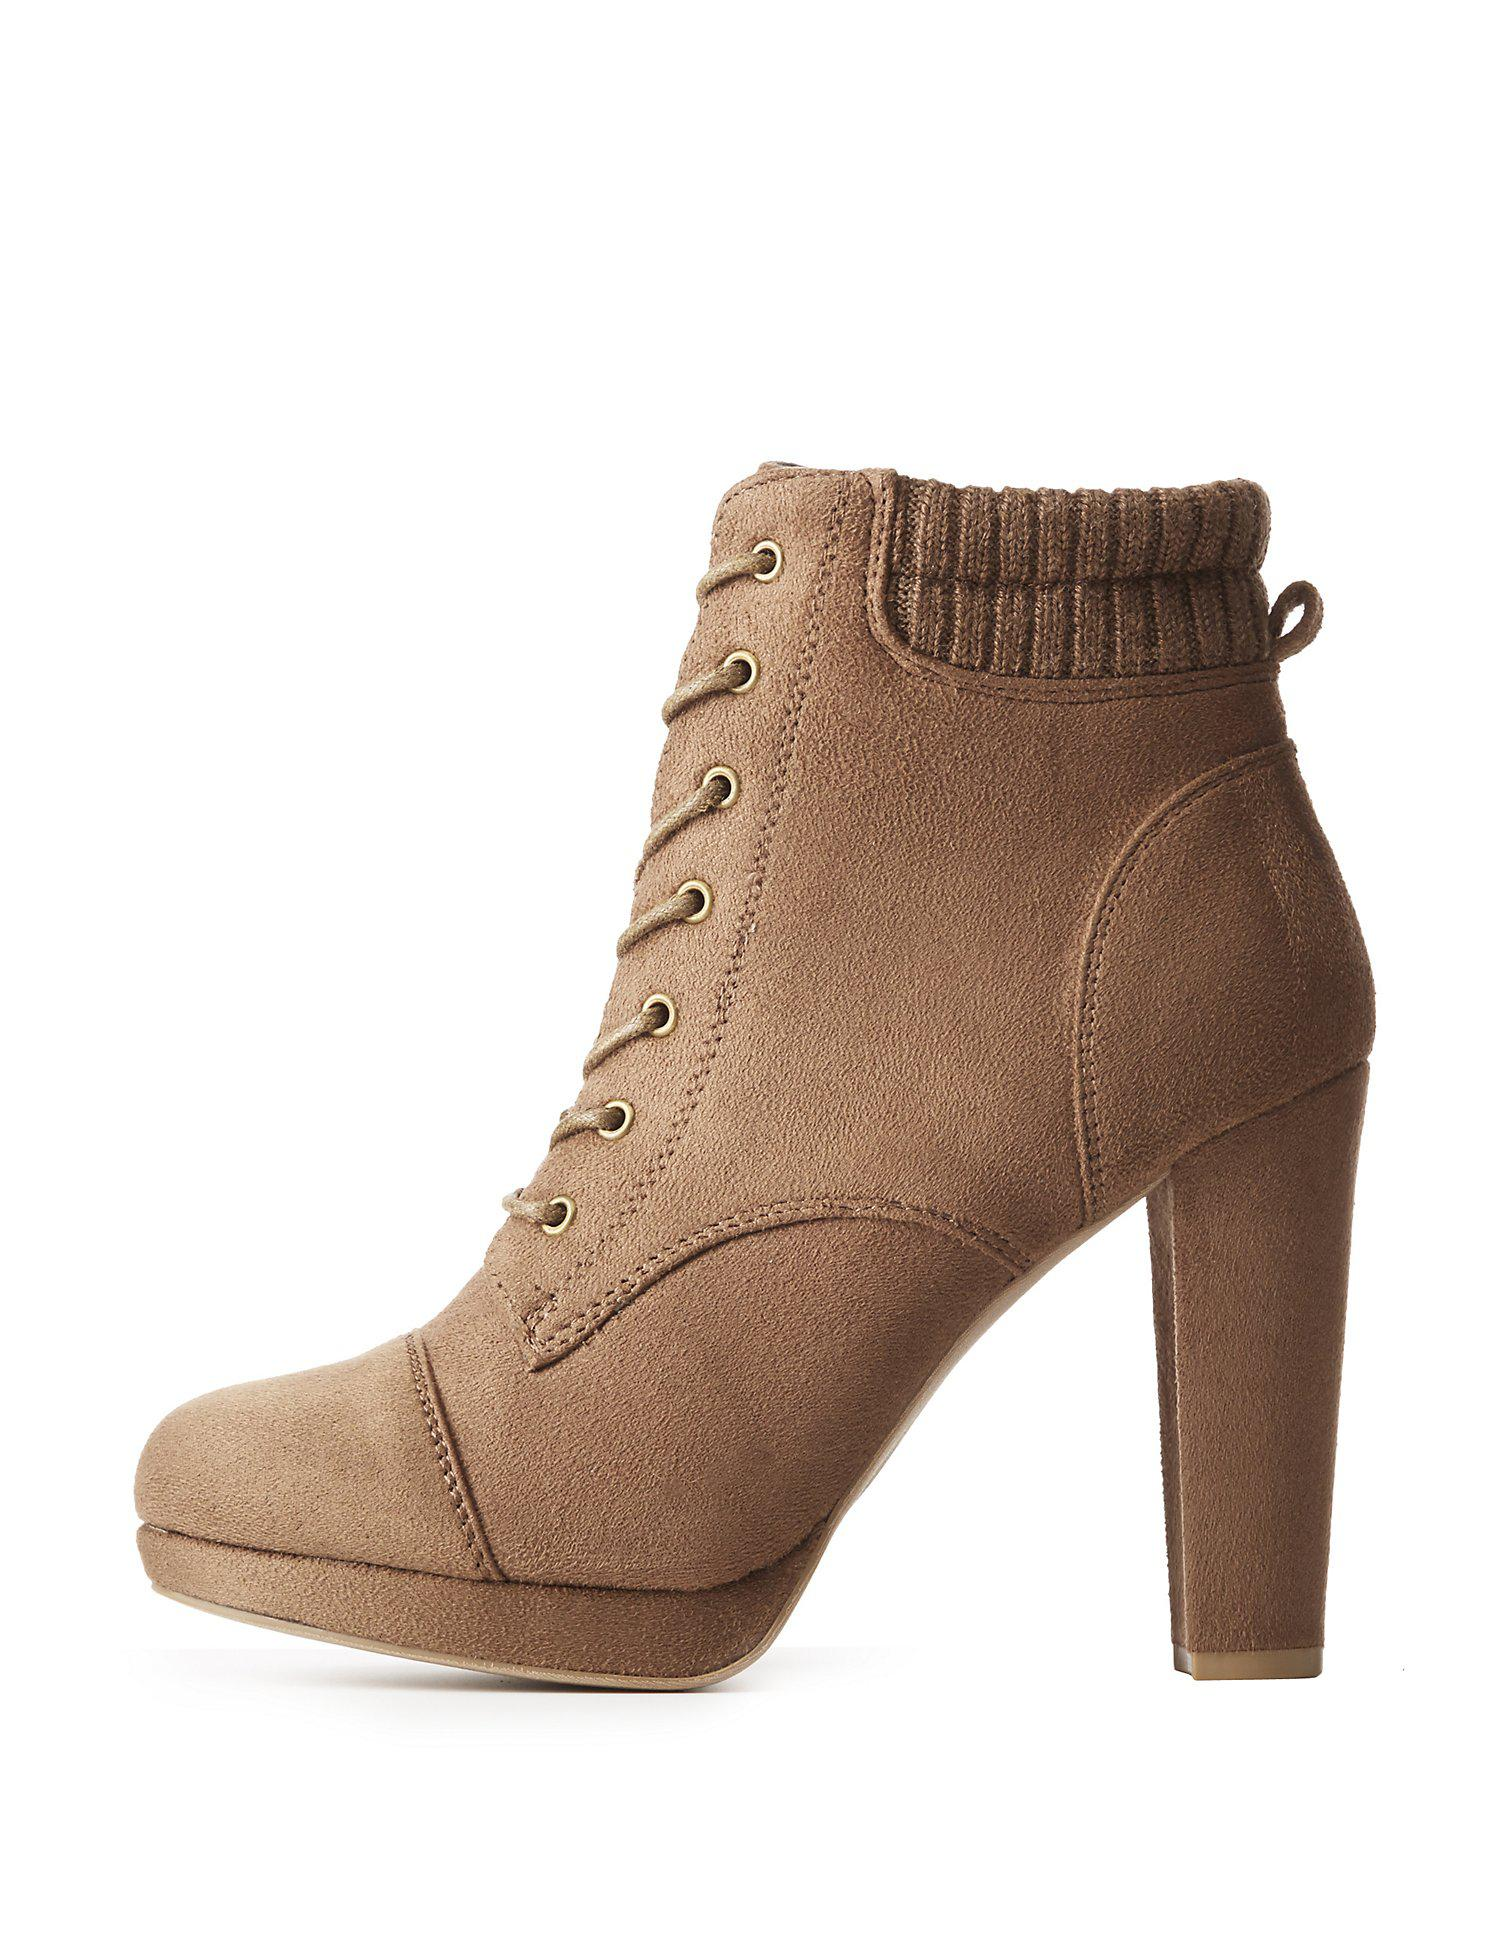 47146b17affb Lyst - Charlotte Russe Lace-up Block Heel Booties in Brown